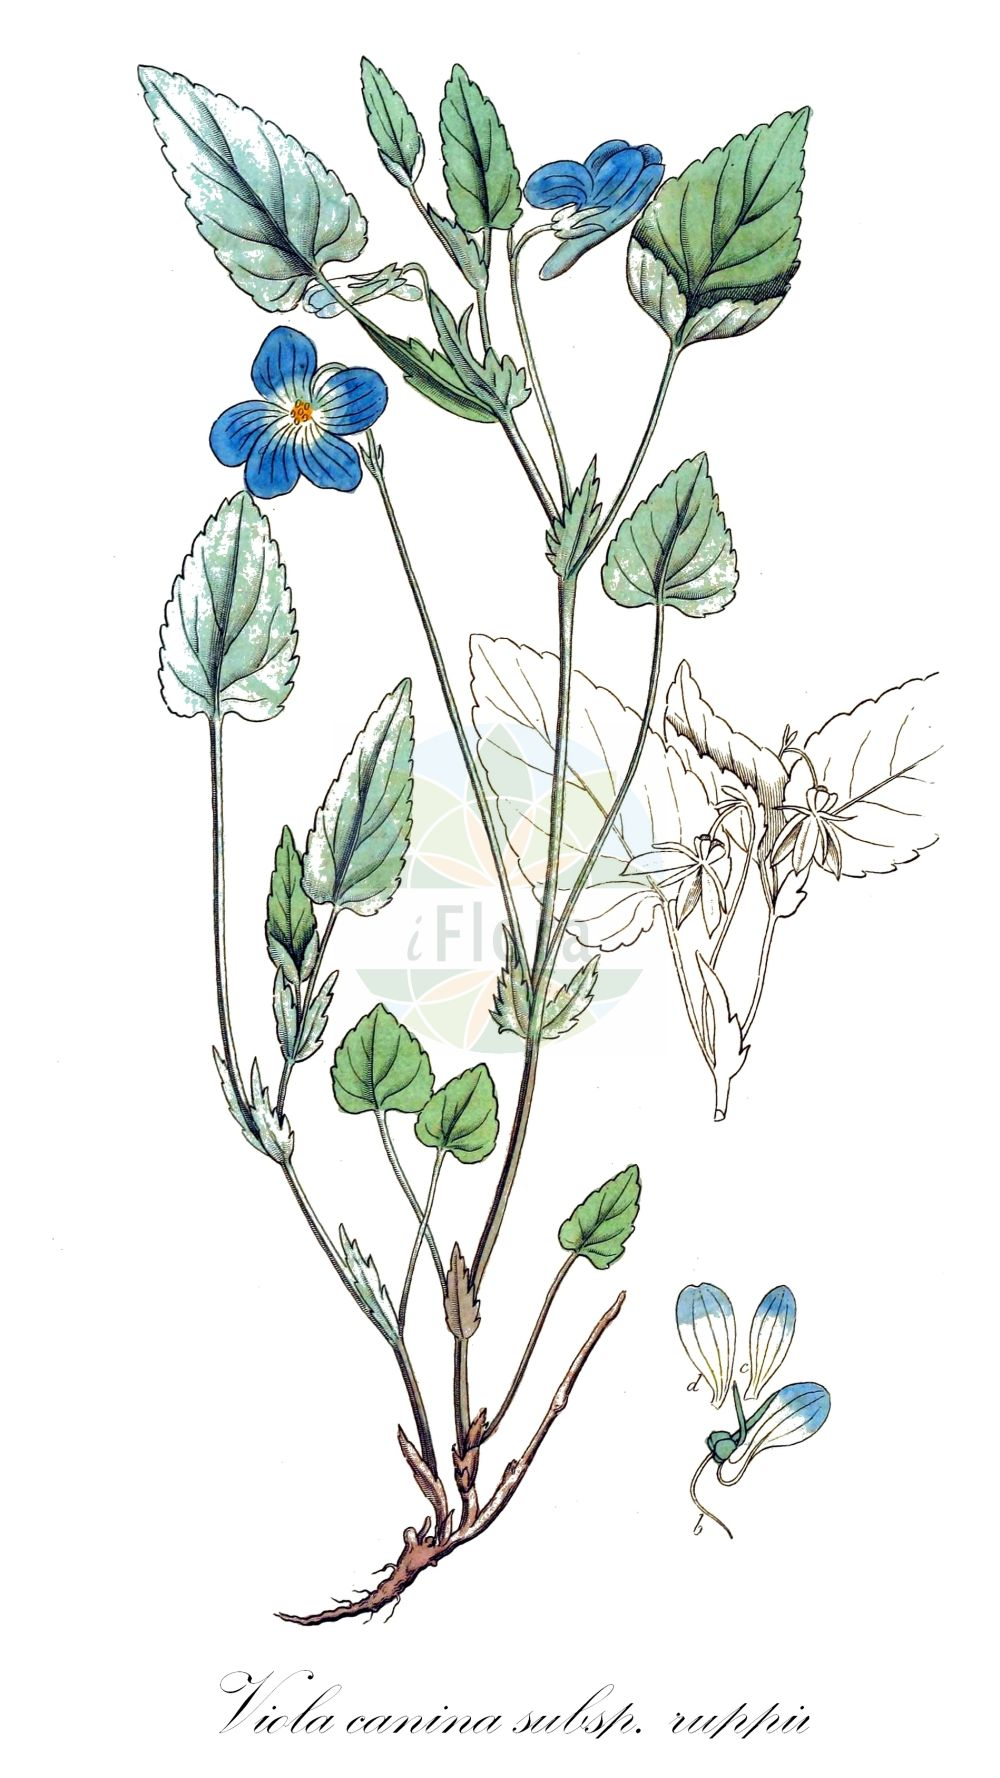 Historische Abbildung von Viola canina subsp. ruppii (Berg-Veilchen - Heath Dog-violet). Das Bild zeigt Blatt, Bluete, Frucht und Same. ---- Historical Drawing of Viola canina subsp. ruppii (Berg-Veilchen - Heath Dog-violet).The image is showing leaf, flower, fruit and seed. (Viola canina subsp. ruppii,Berg-Veilchen,Heath Dog-violet,Viola montana,Viola,Veilchen,violet,Violaceae,Veilchengewaechse,Violet family,Blatt,Bluete,Frucht,Same,leaf,flower,fruit,seed,Palmstruch (1807-1843))